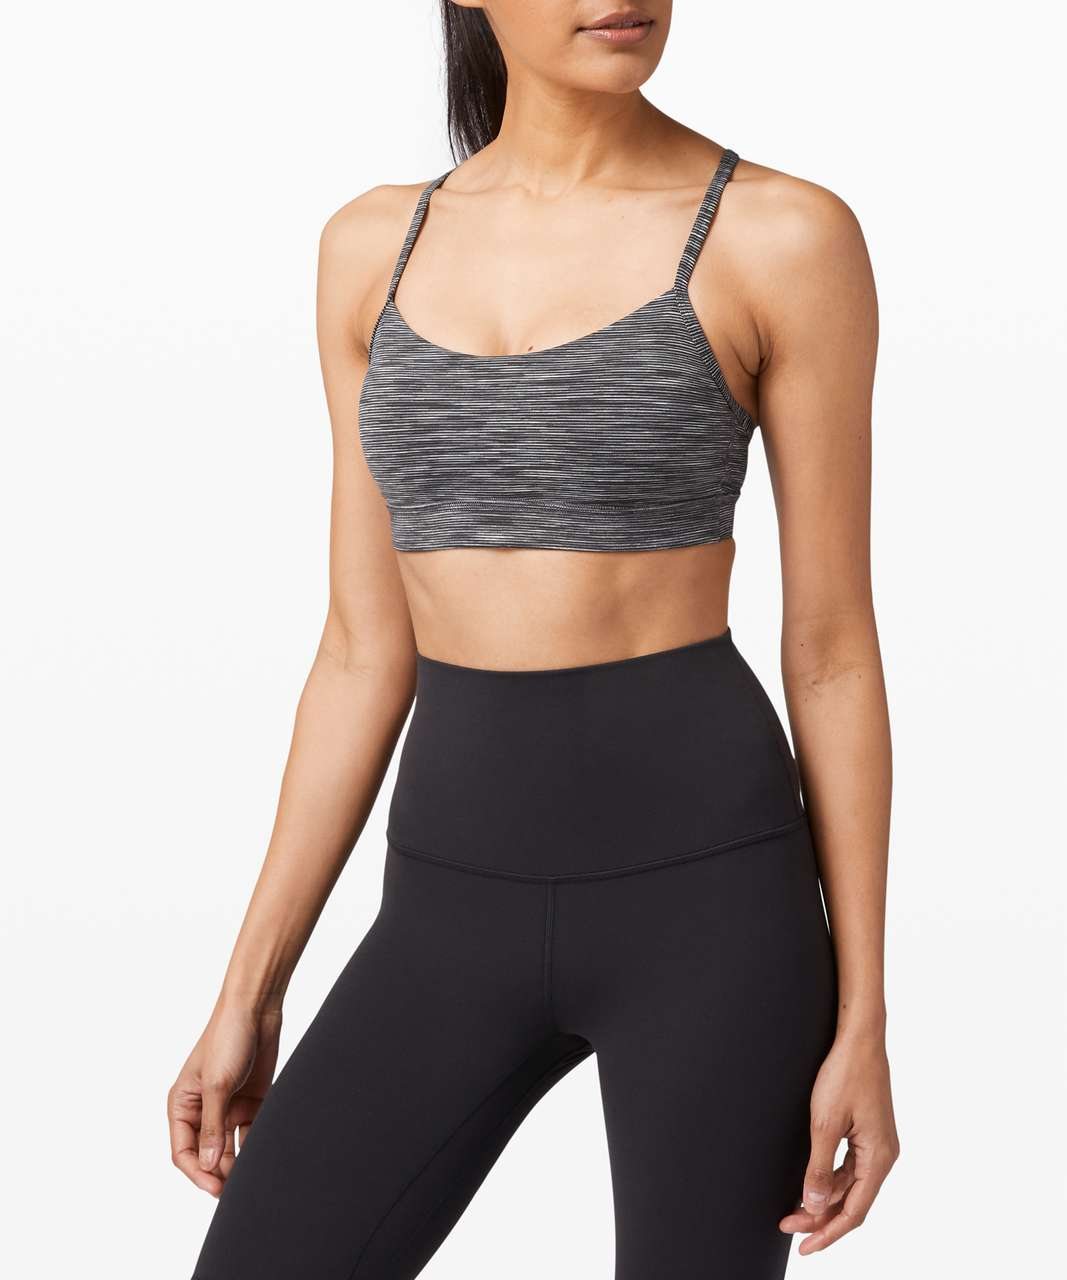 Lululemon Flow Y Bra Nulu *Light Support, B/C Cup - Wee Are From Space Dark Carbon Ice Grey